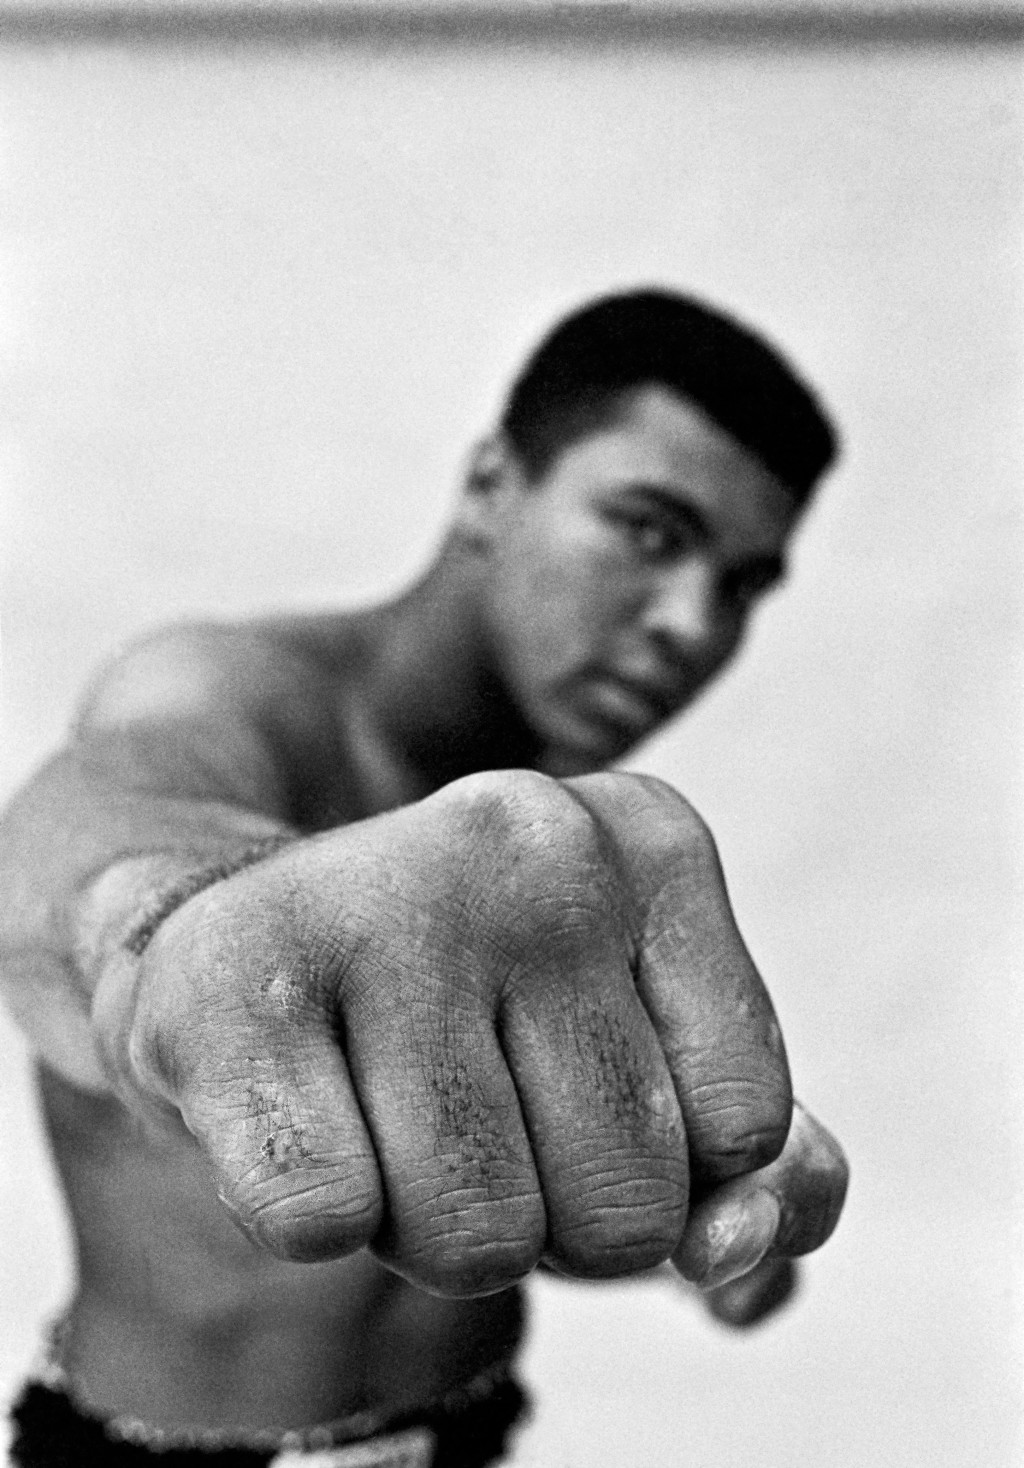 USA. Chicago 1966. MUHAMMAD ALI, boxing world heavy weight champion showing off his right fist.